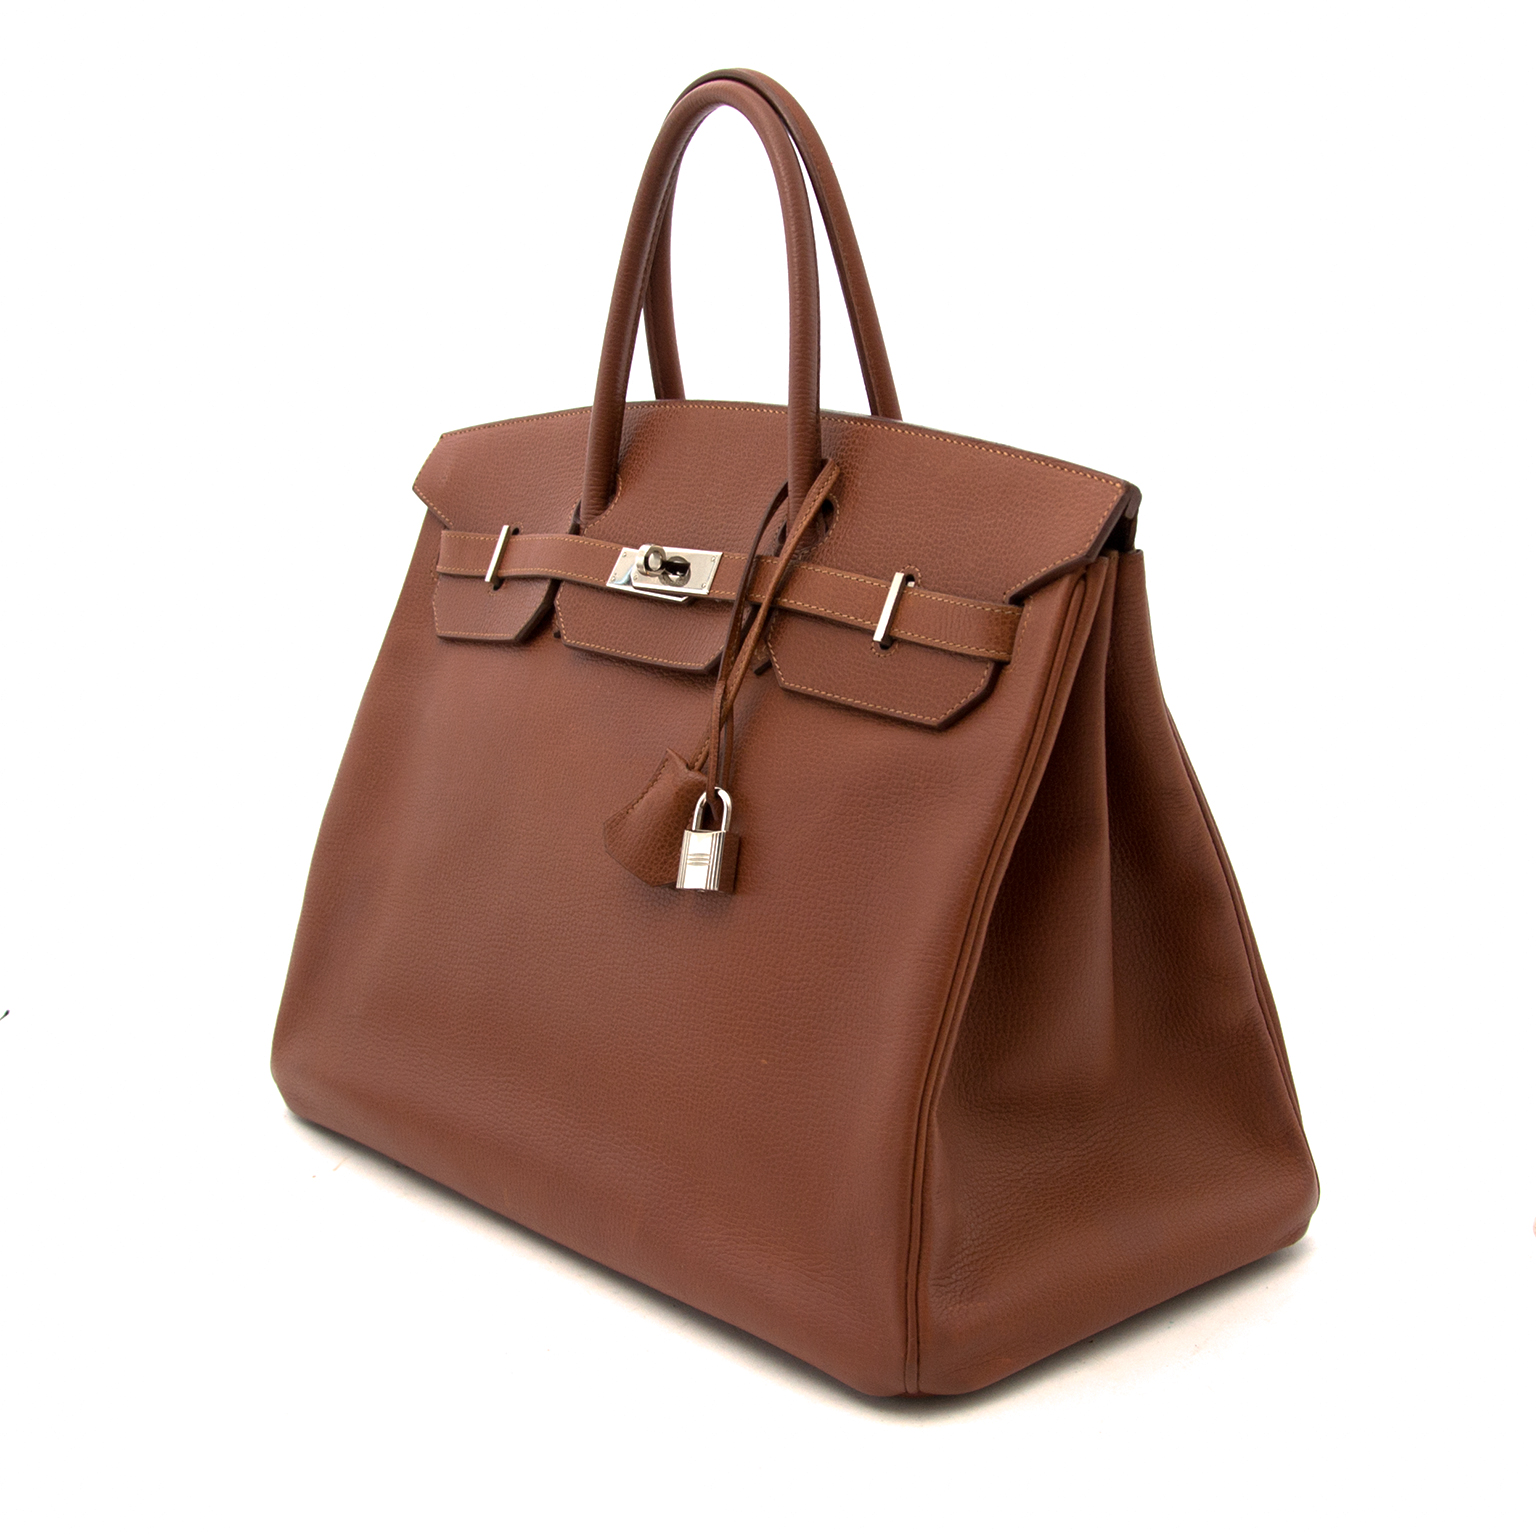 Buy your hermes birkin marron veau fjord 40 phw right now at labellov.com